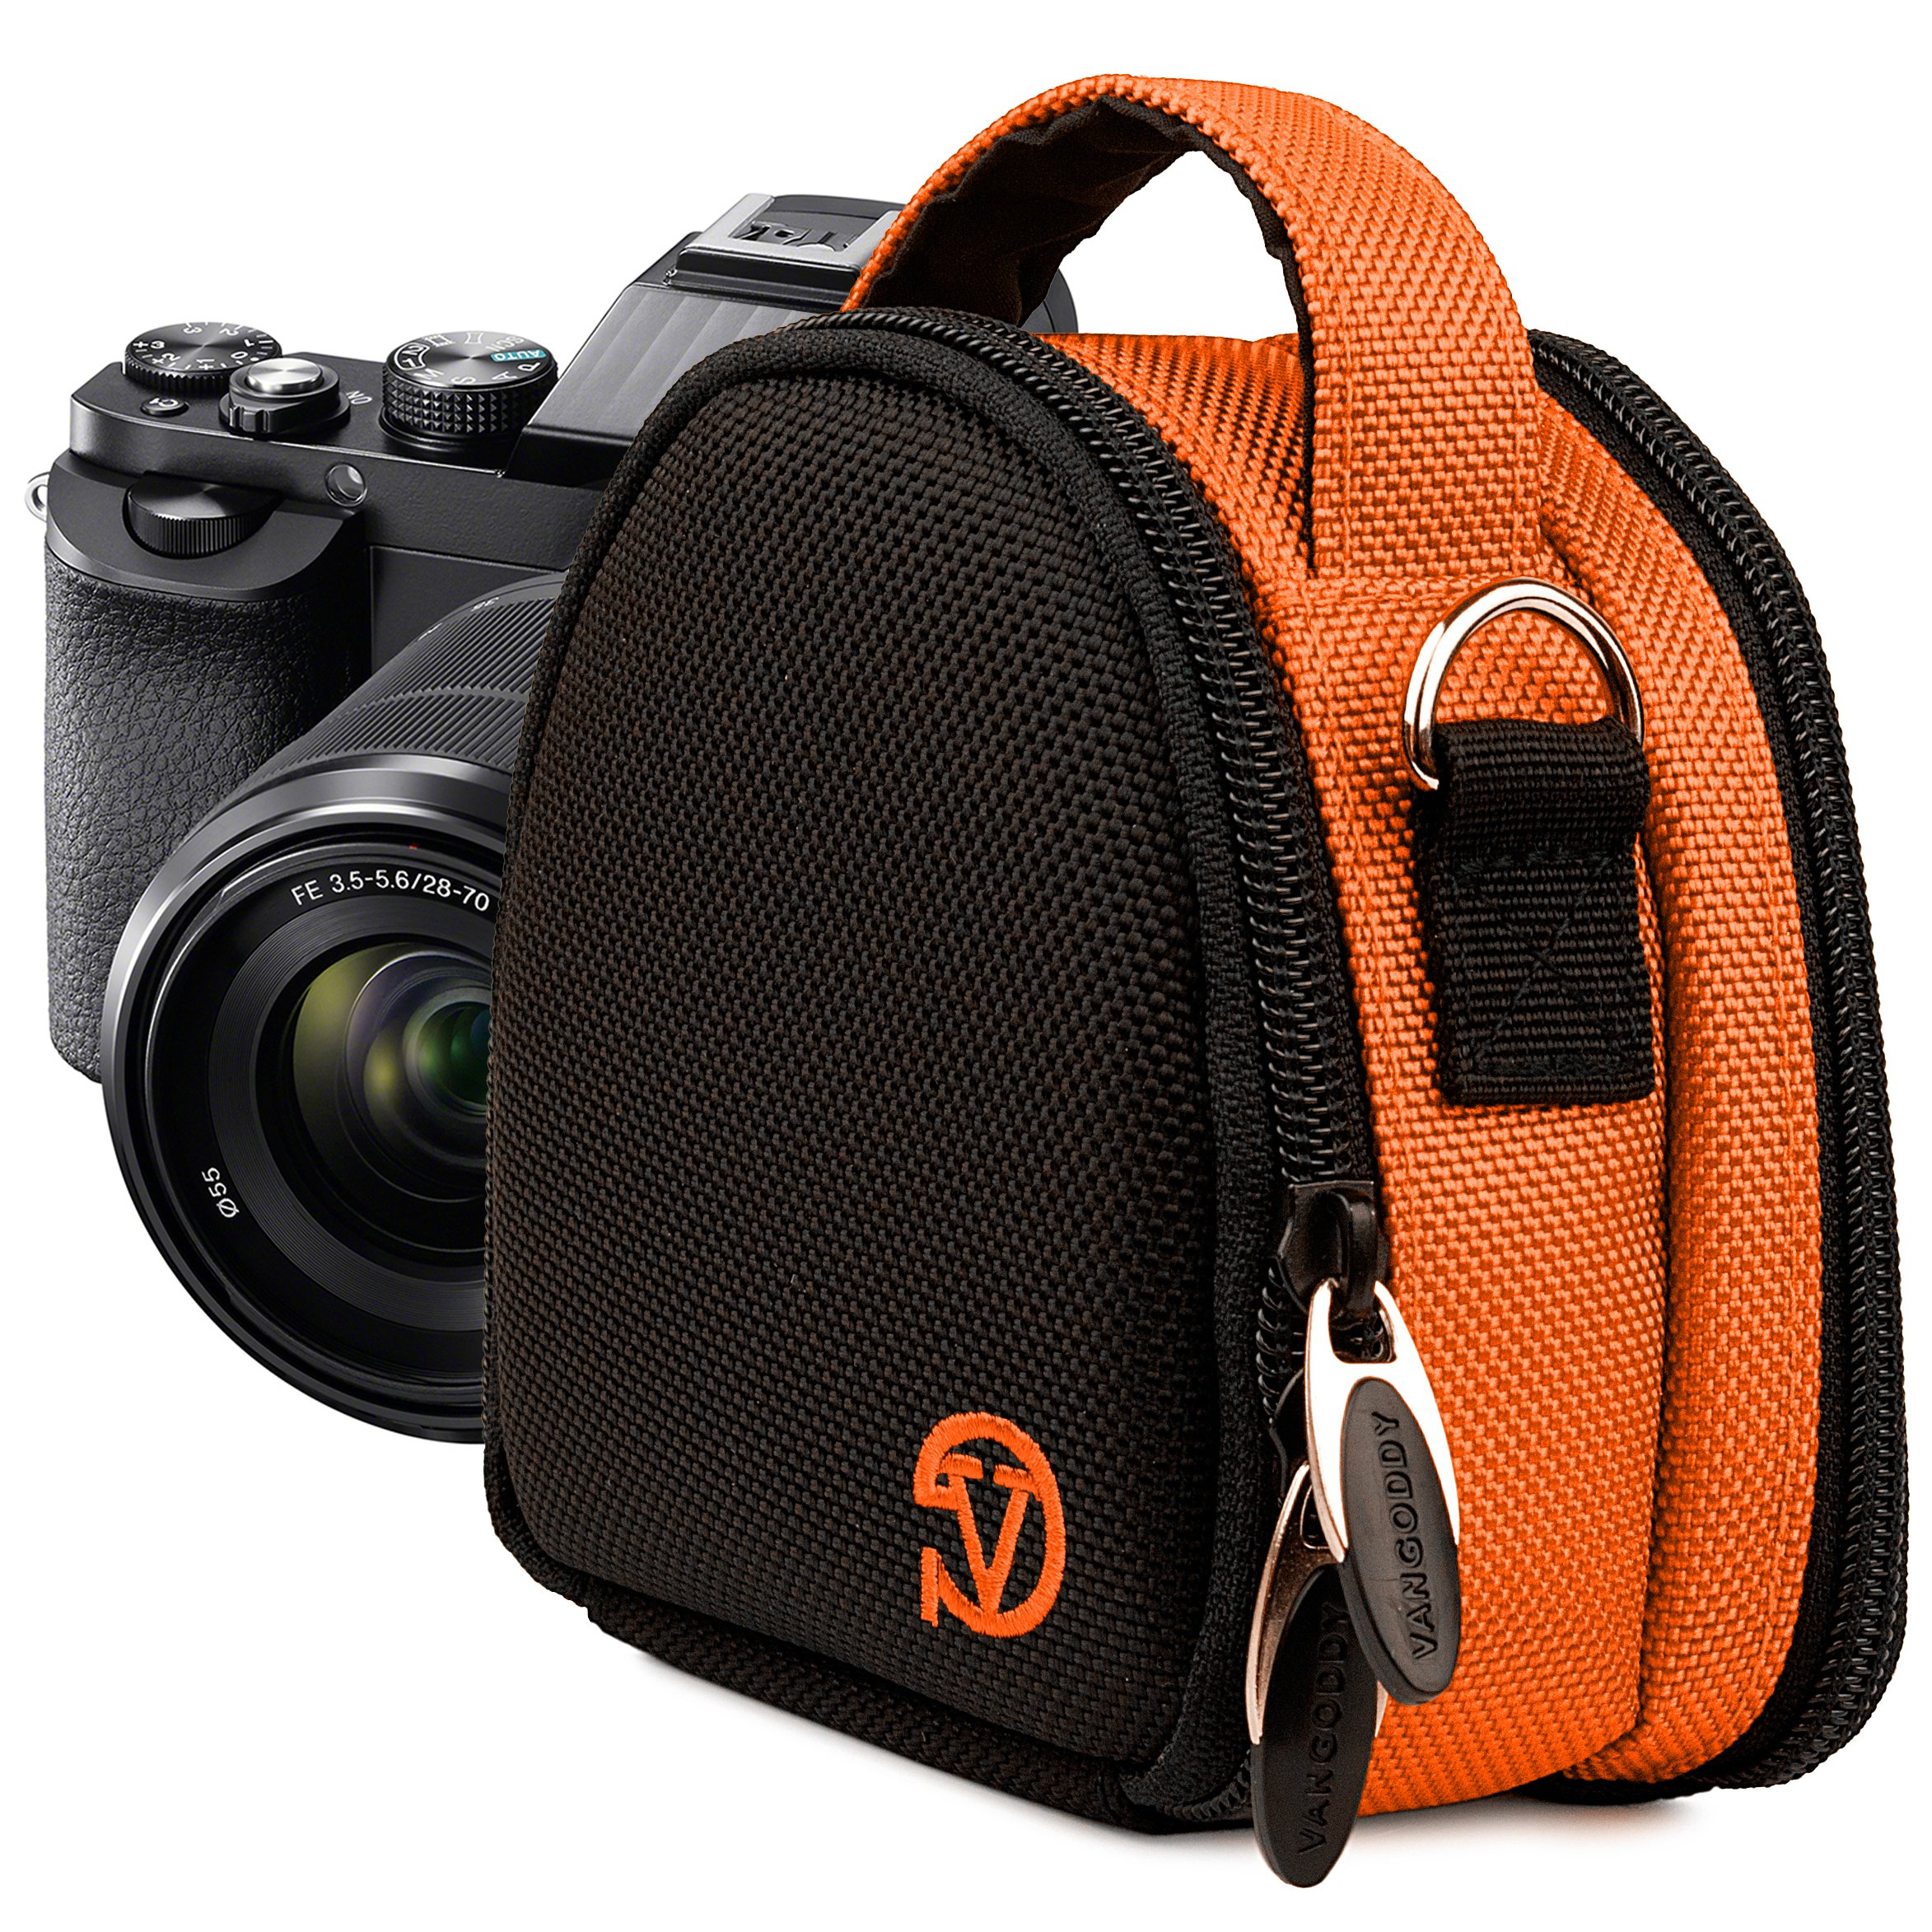 VanGoddy Compact Mini Laurel Orange Camera Pouch Cover Bag fits Canon PowerShot G7 X, N100, N Facebook, SX600, SX260, S120, S110 HS by Vangoddy